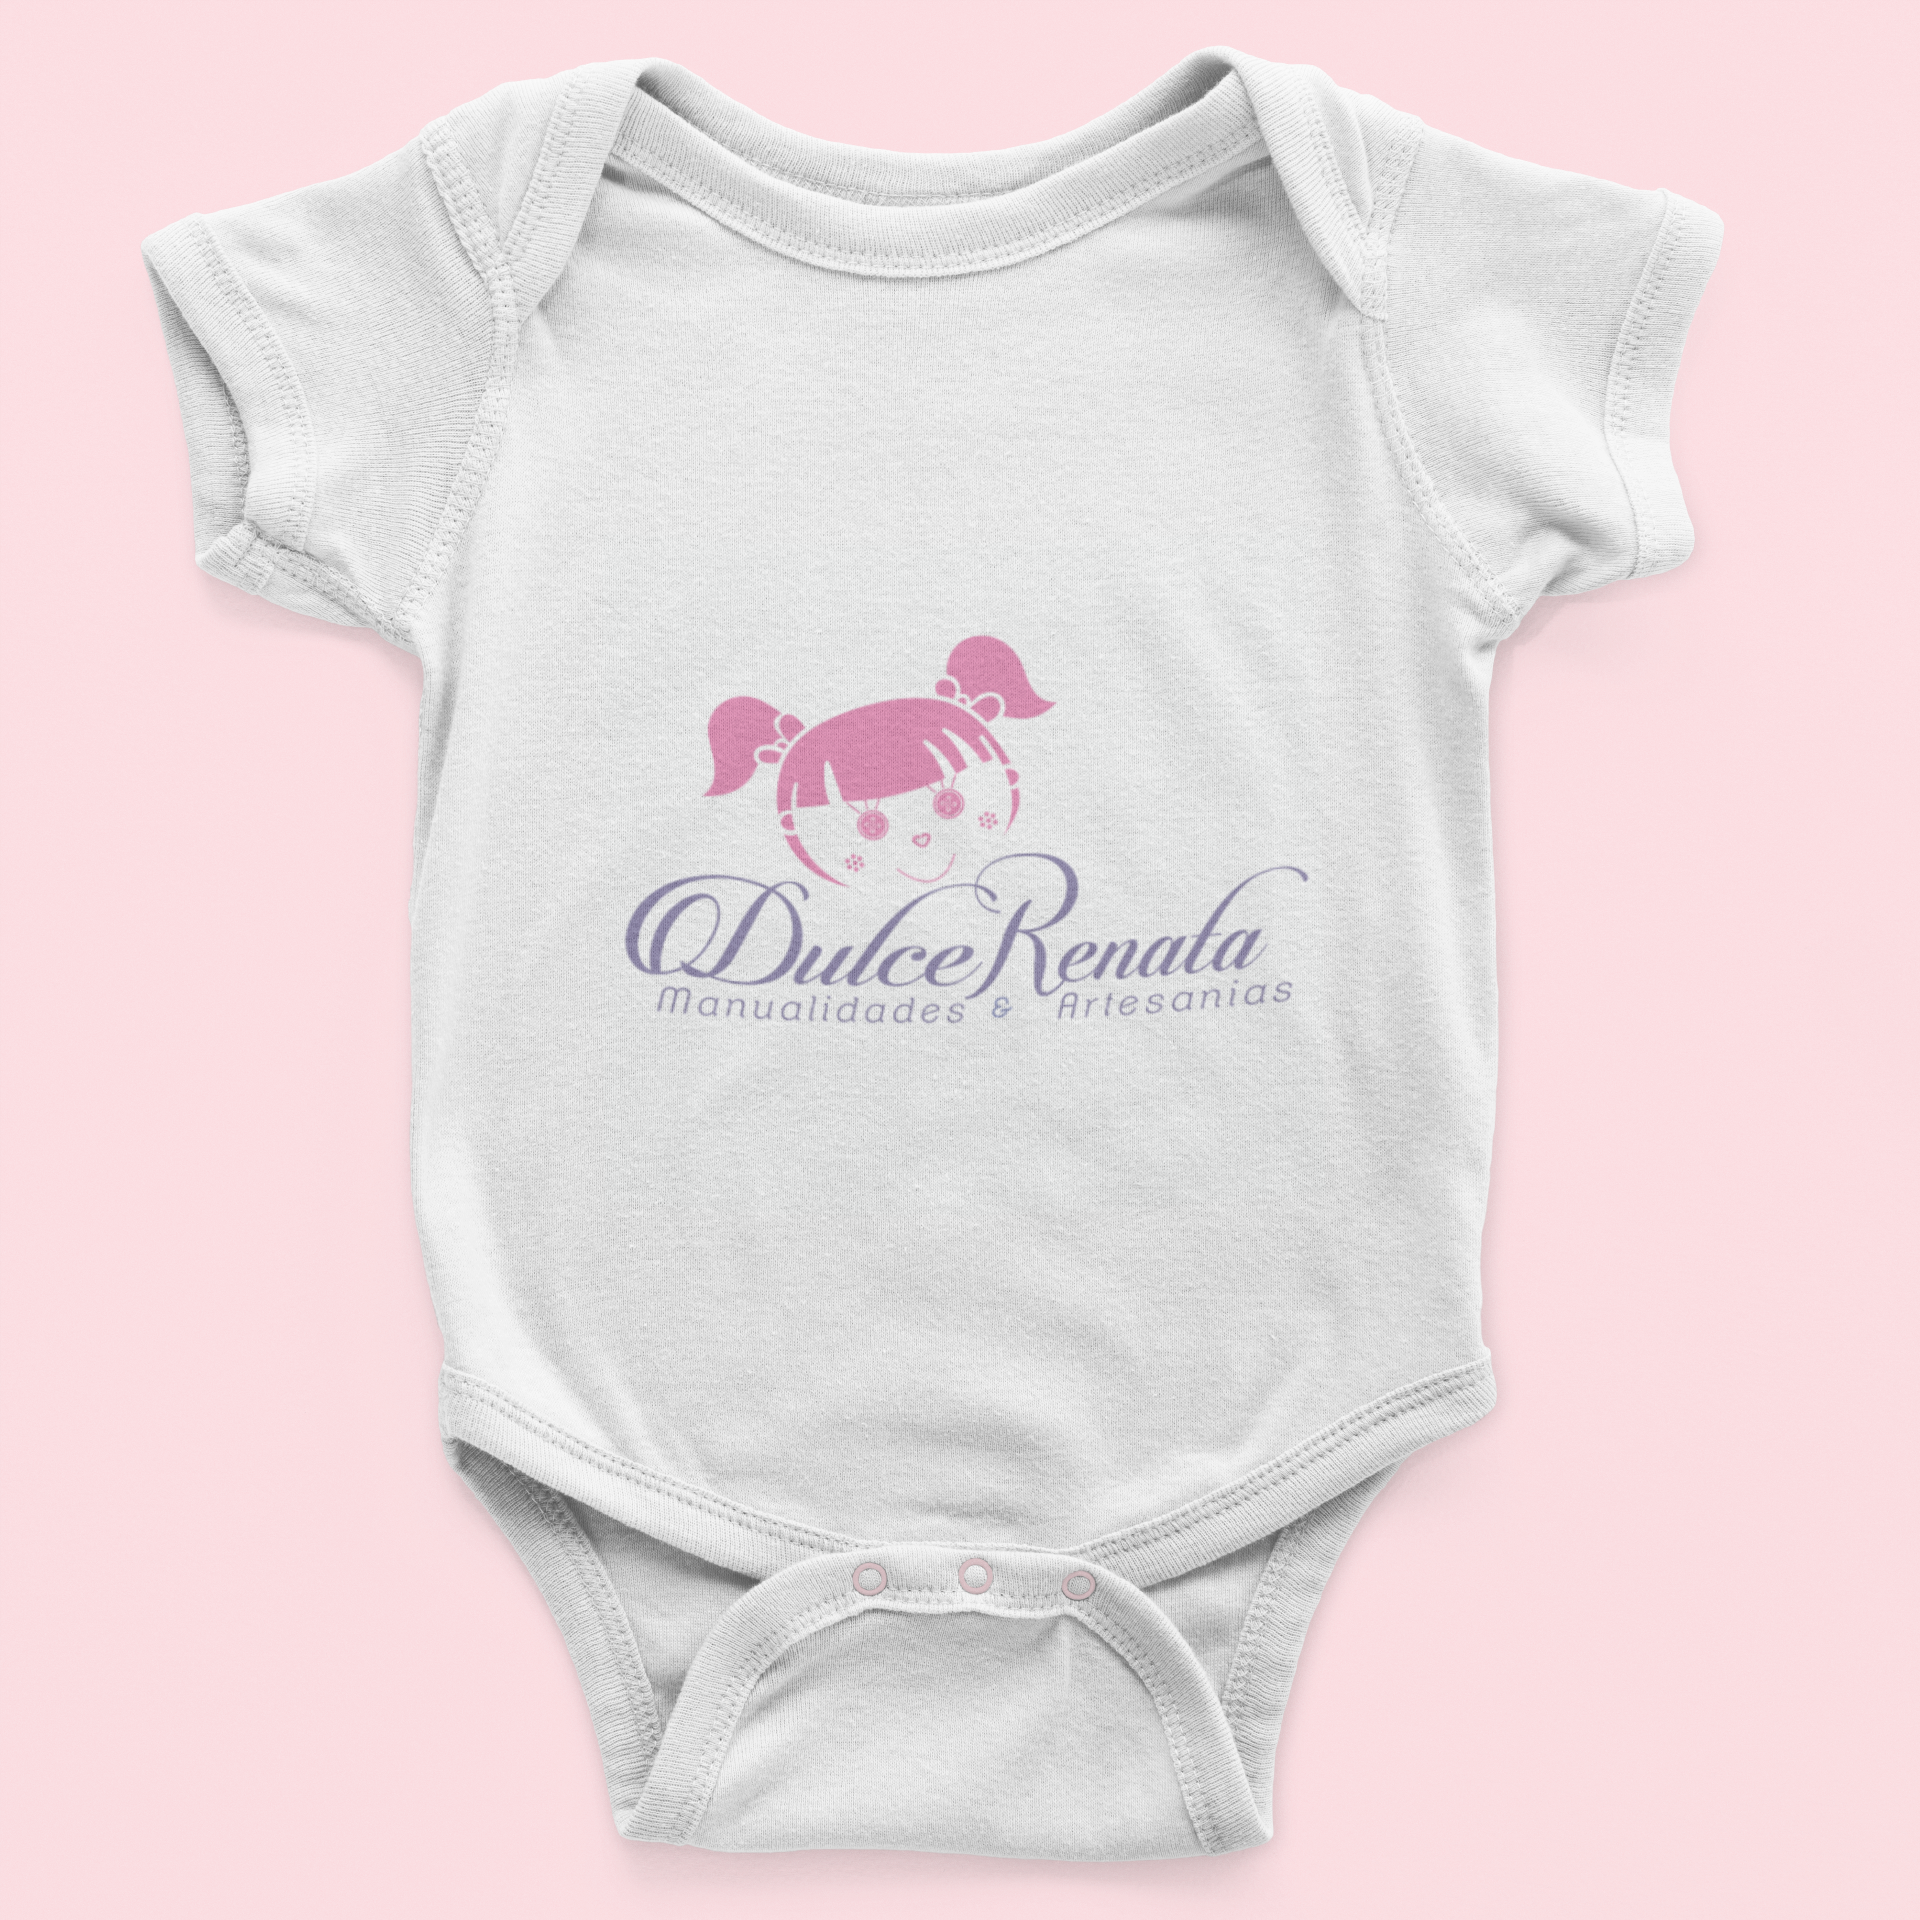 mockup-of-a-little-baby-s-onesie-over-a-